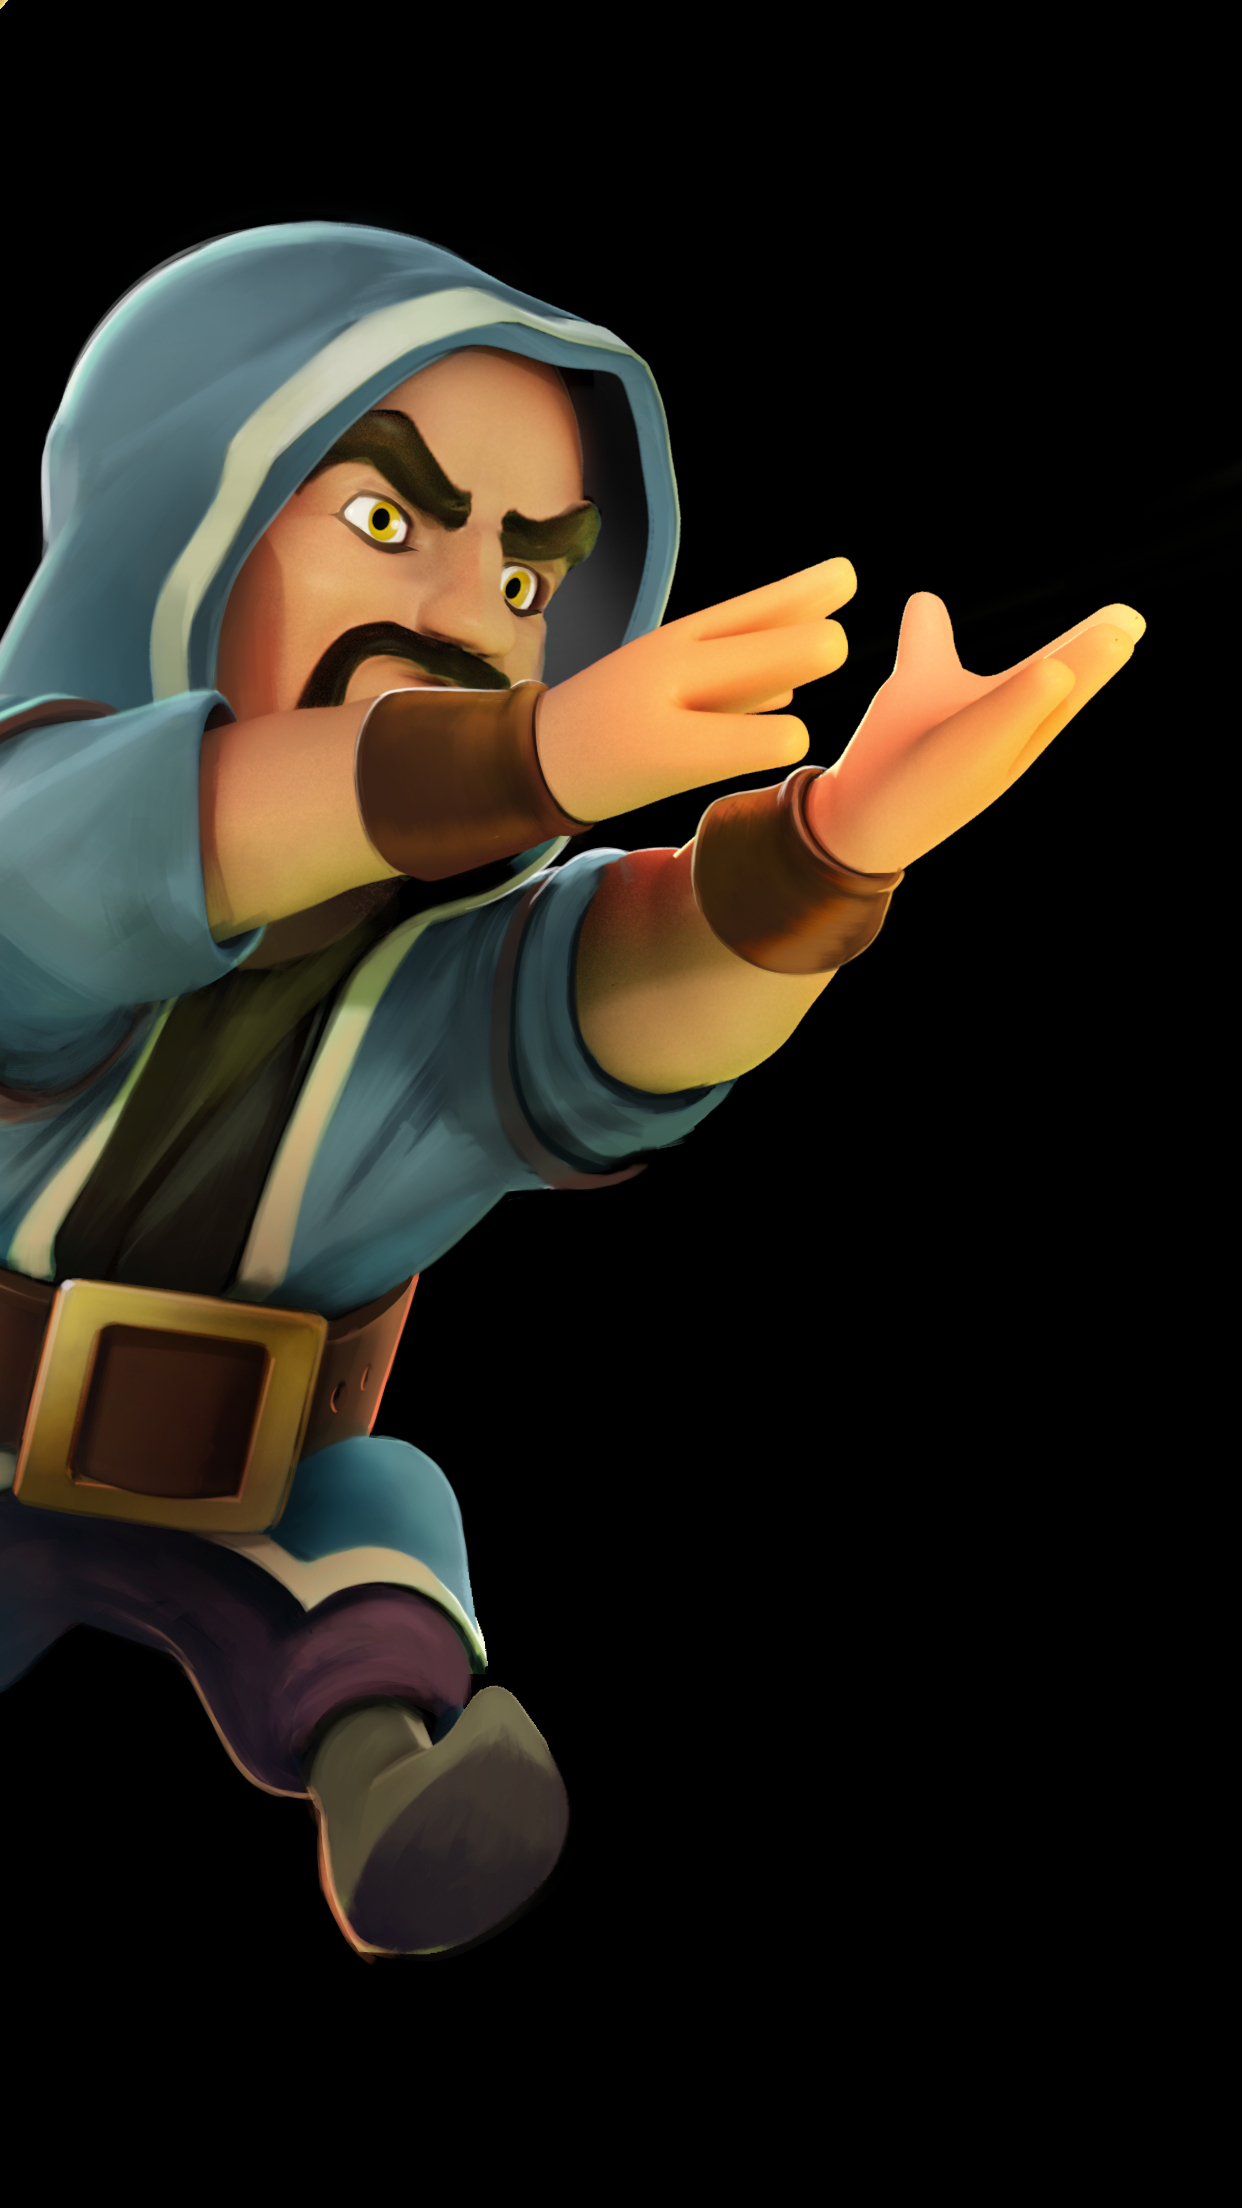 Clash of Clans Wizard Images Full HD Pictures 1242x2208